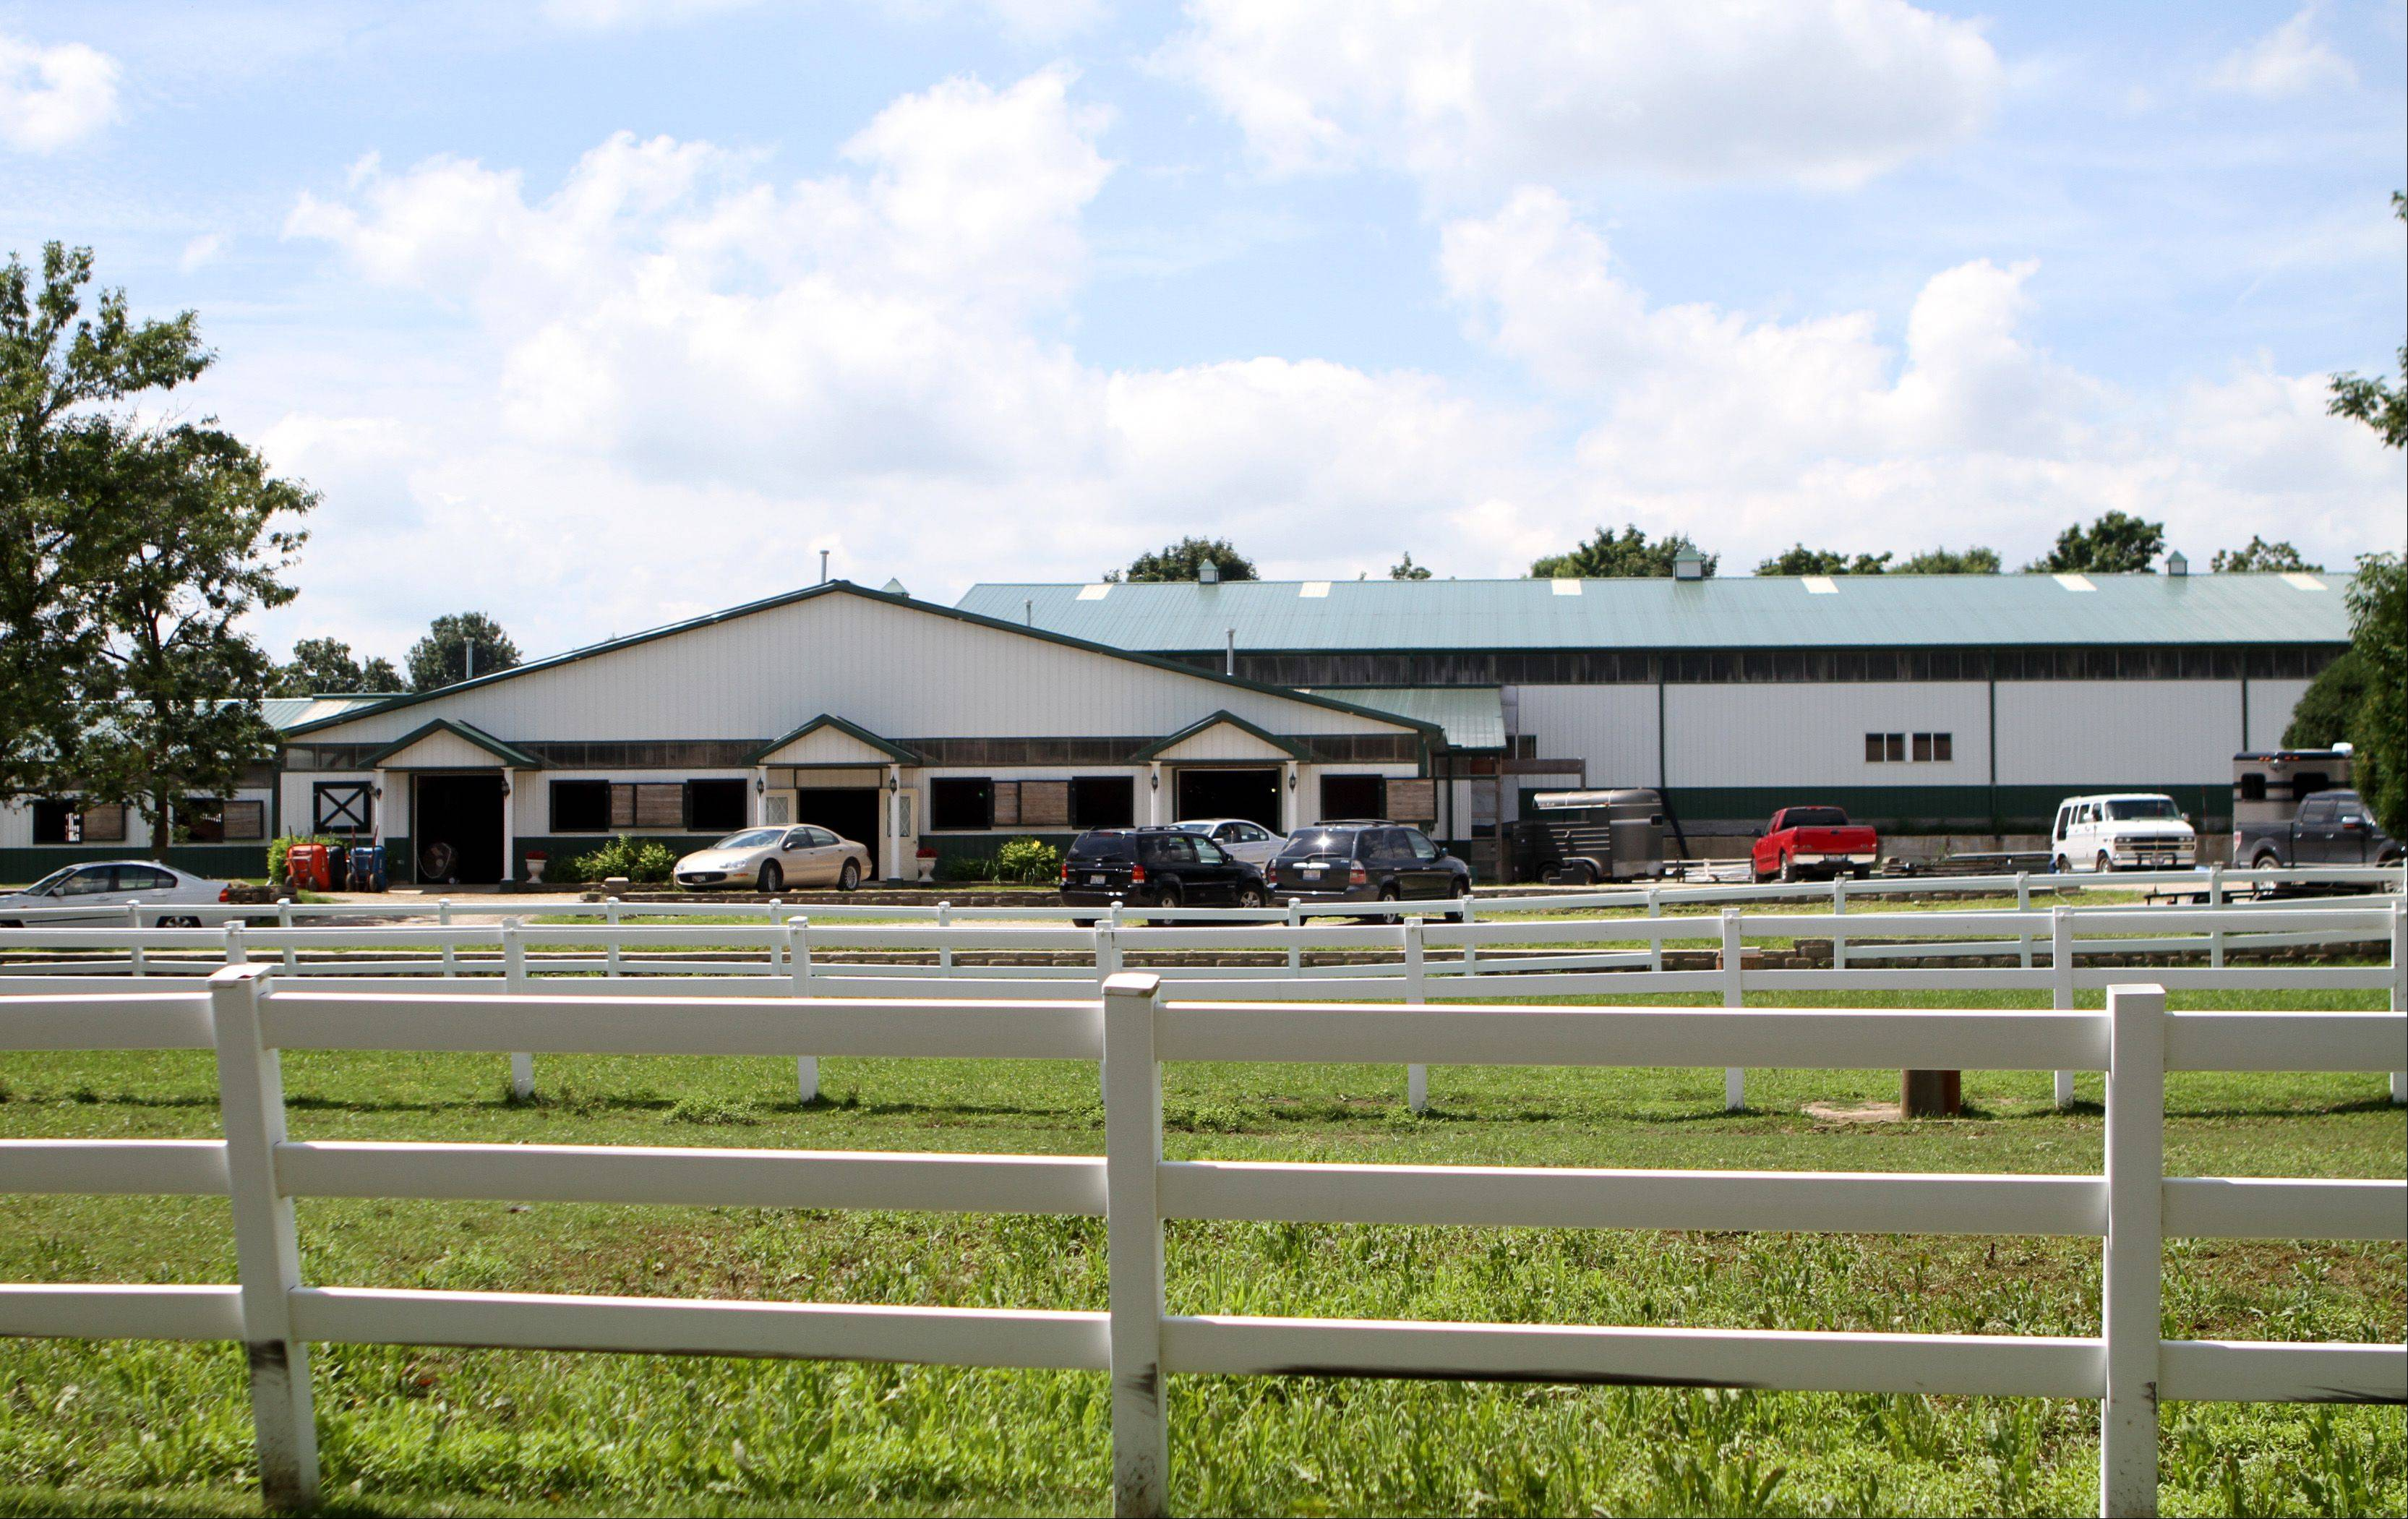 Regulation of commercial horse boarding at Oakwood Farms in Barrington Hills is at the heart of a proposed change to the village code being considered Monday, as well as a political fight being waged by two former officials on their website.